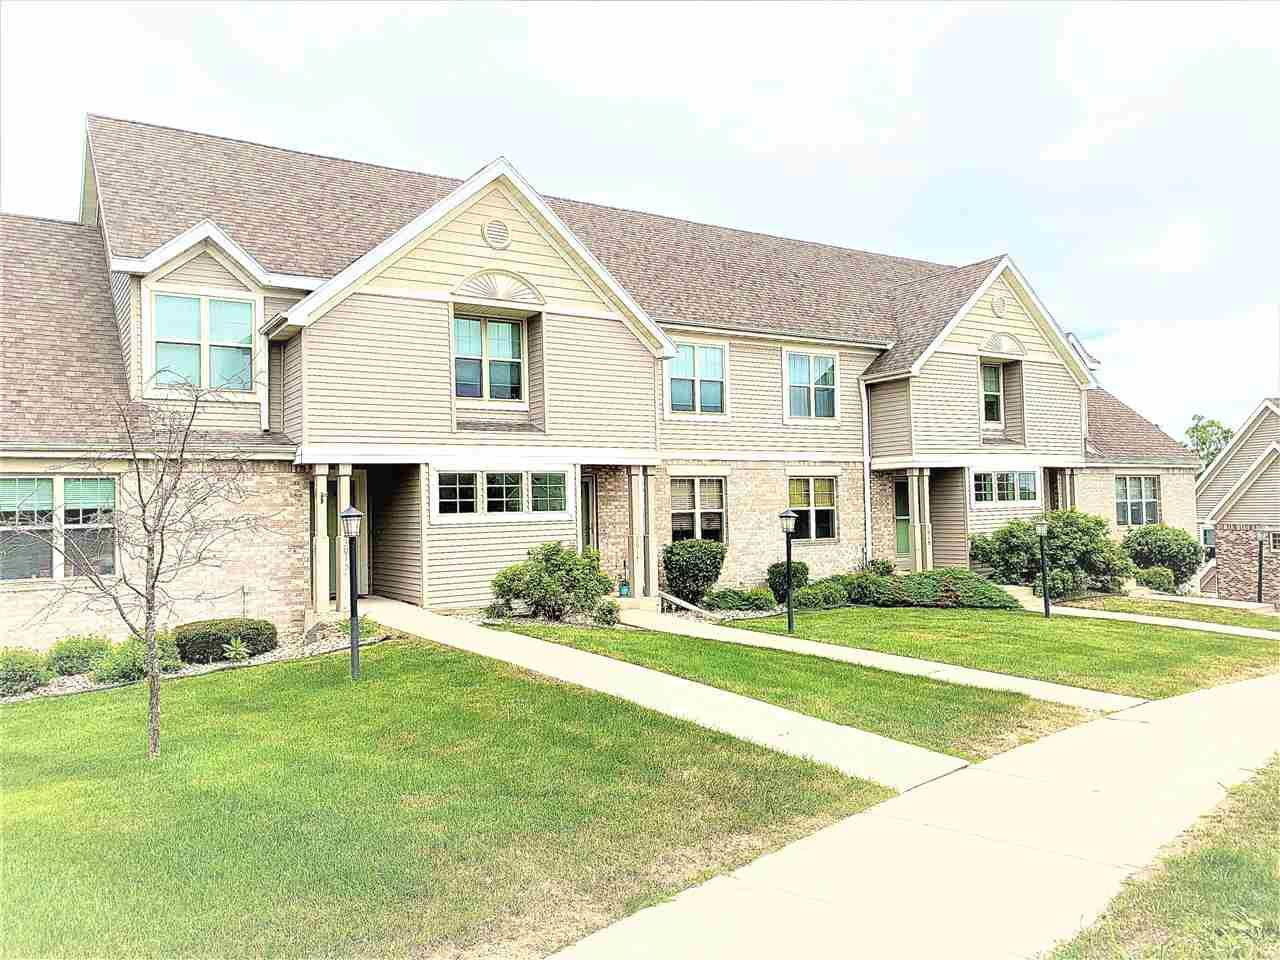 3031 Stratton Way, Madison, WI 53719 - #: 1893419